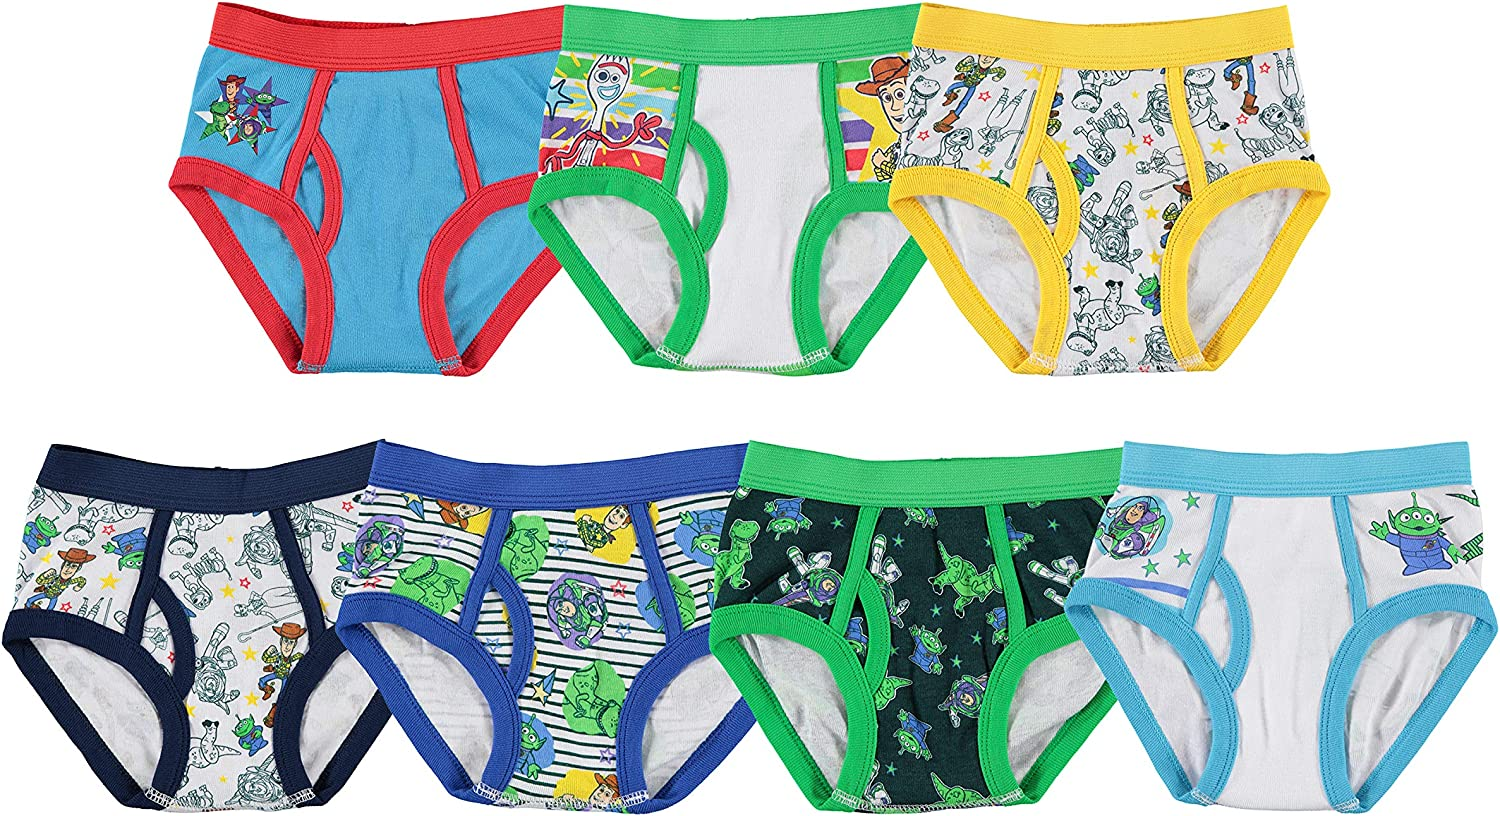 Toy Story boys Toy Story Brief Multipack UNDERWEAR, Toy 7pack, 2-3T US